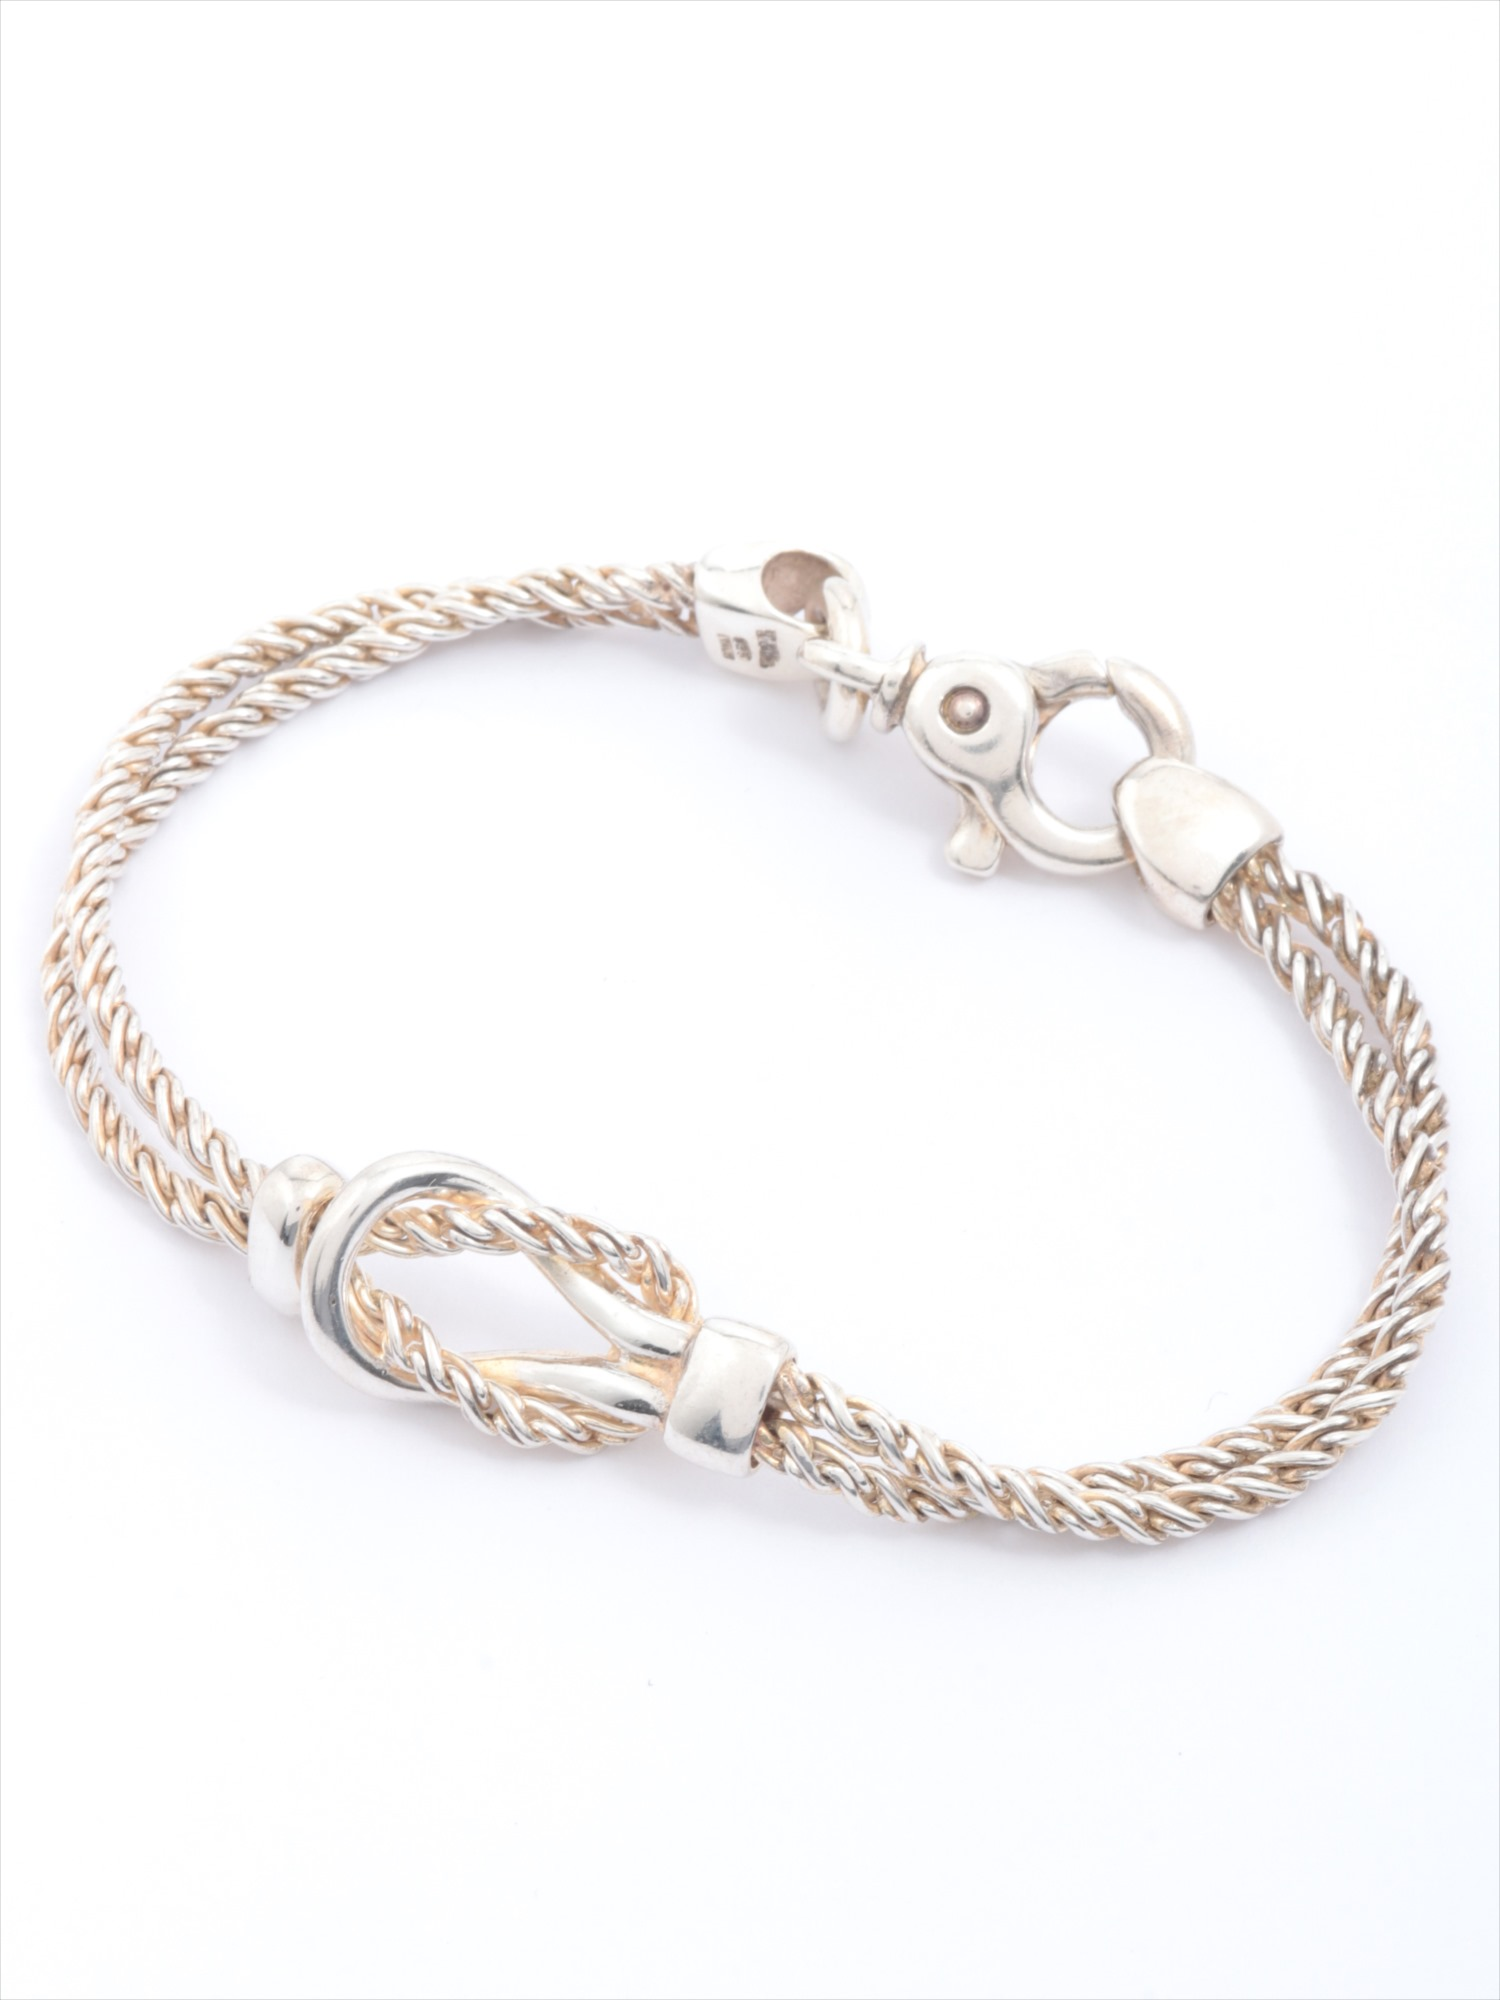 [Used article] Tiffany knot bracelet 925 Silver double rope